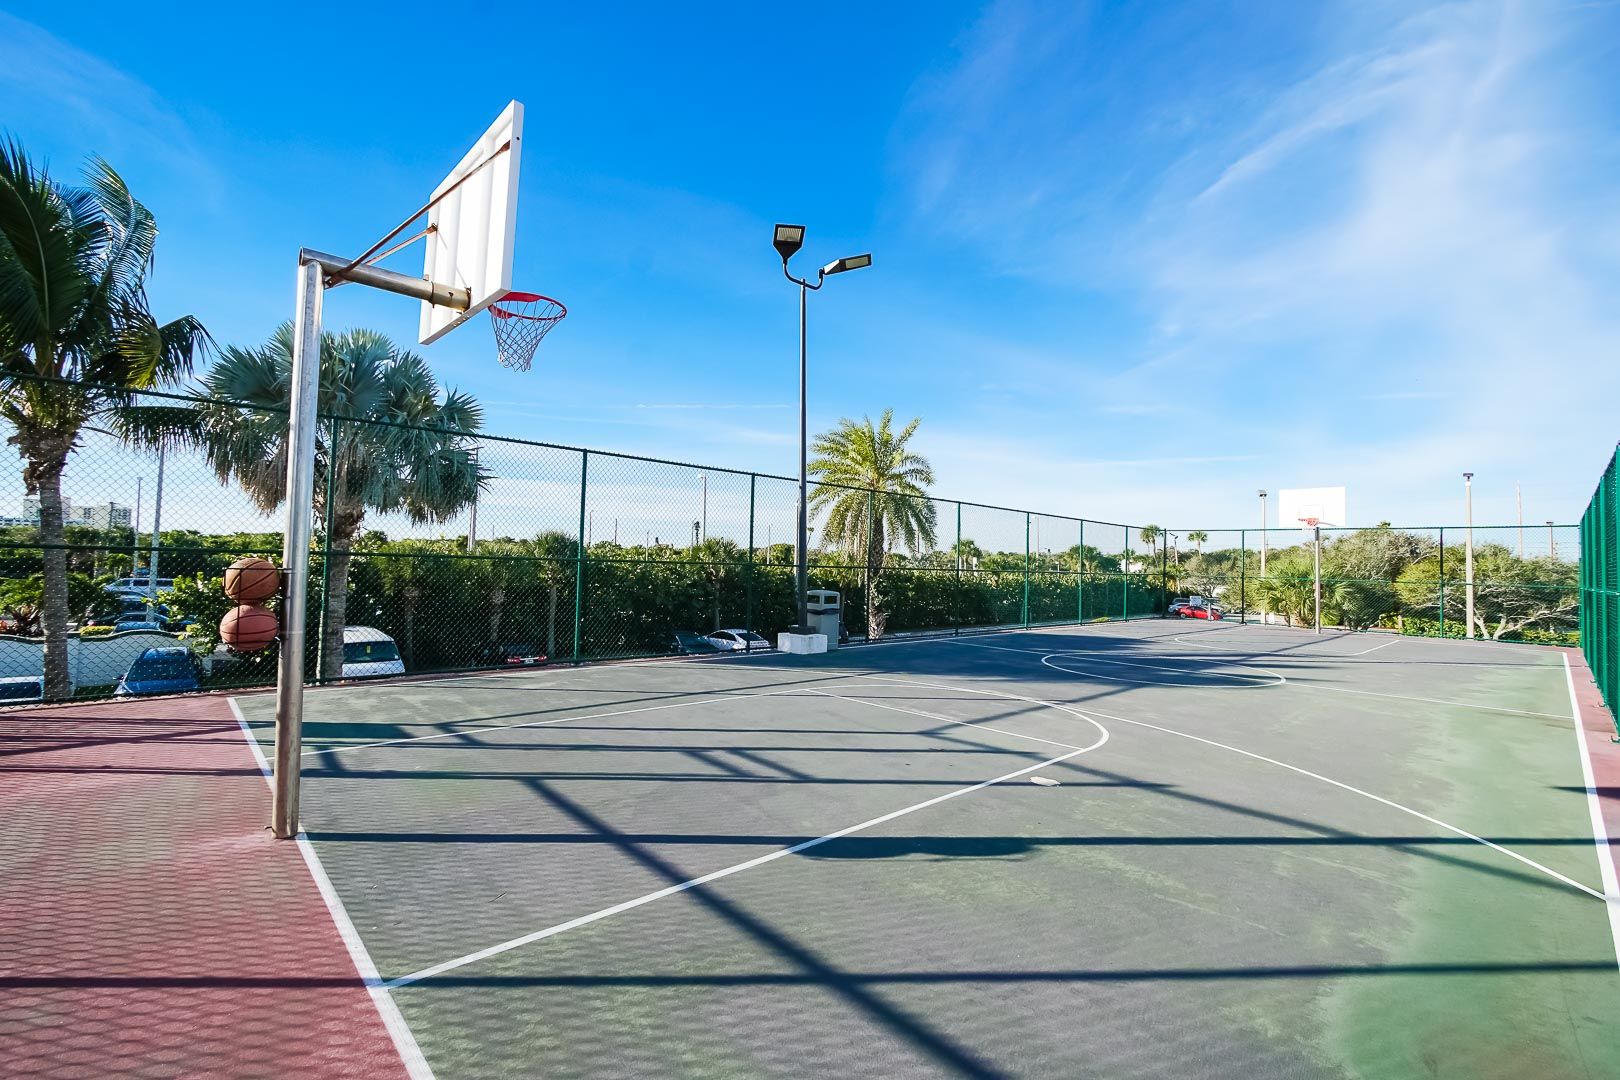 A traditional basketball court at VRI's The Resort on Cocoa Beach in Florida.